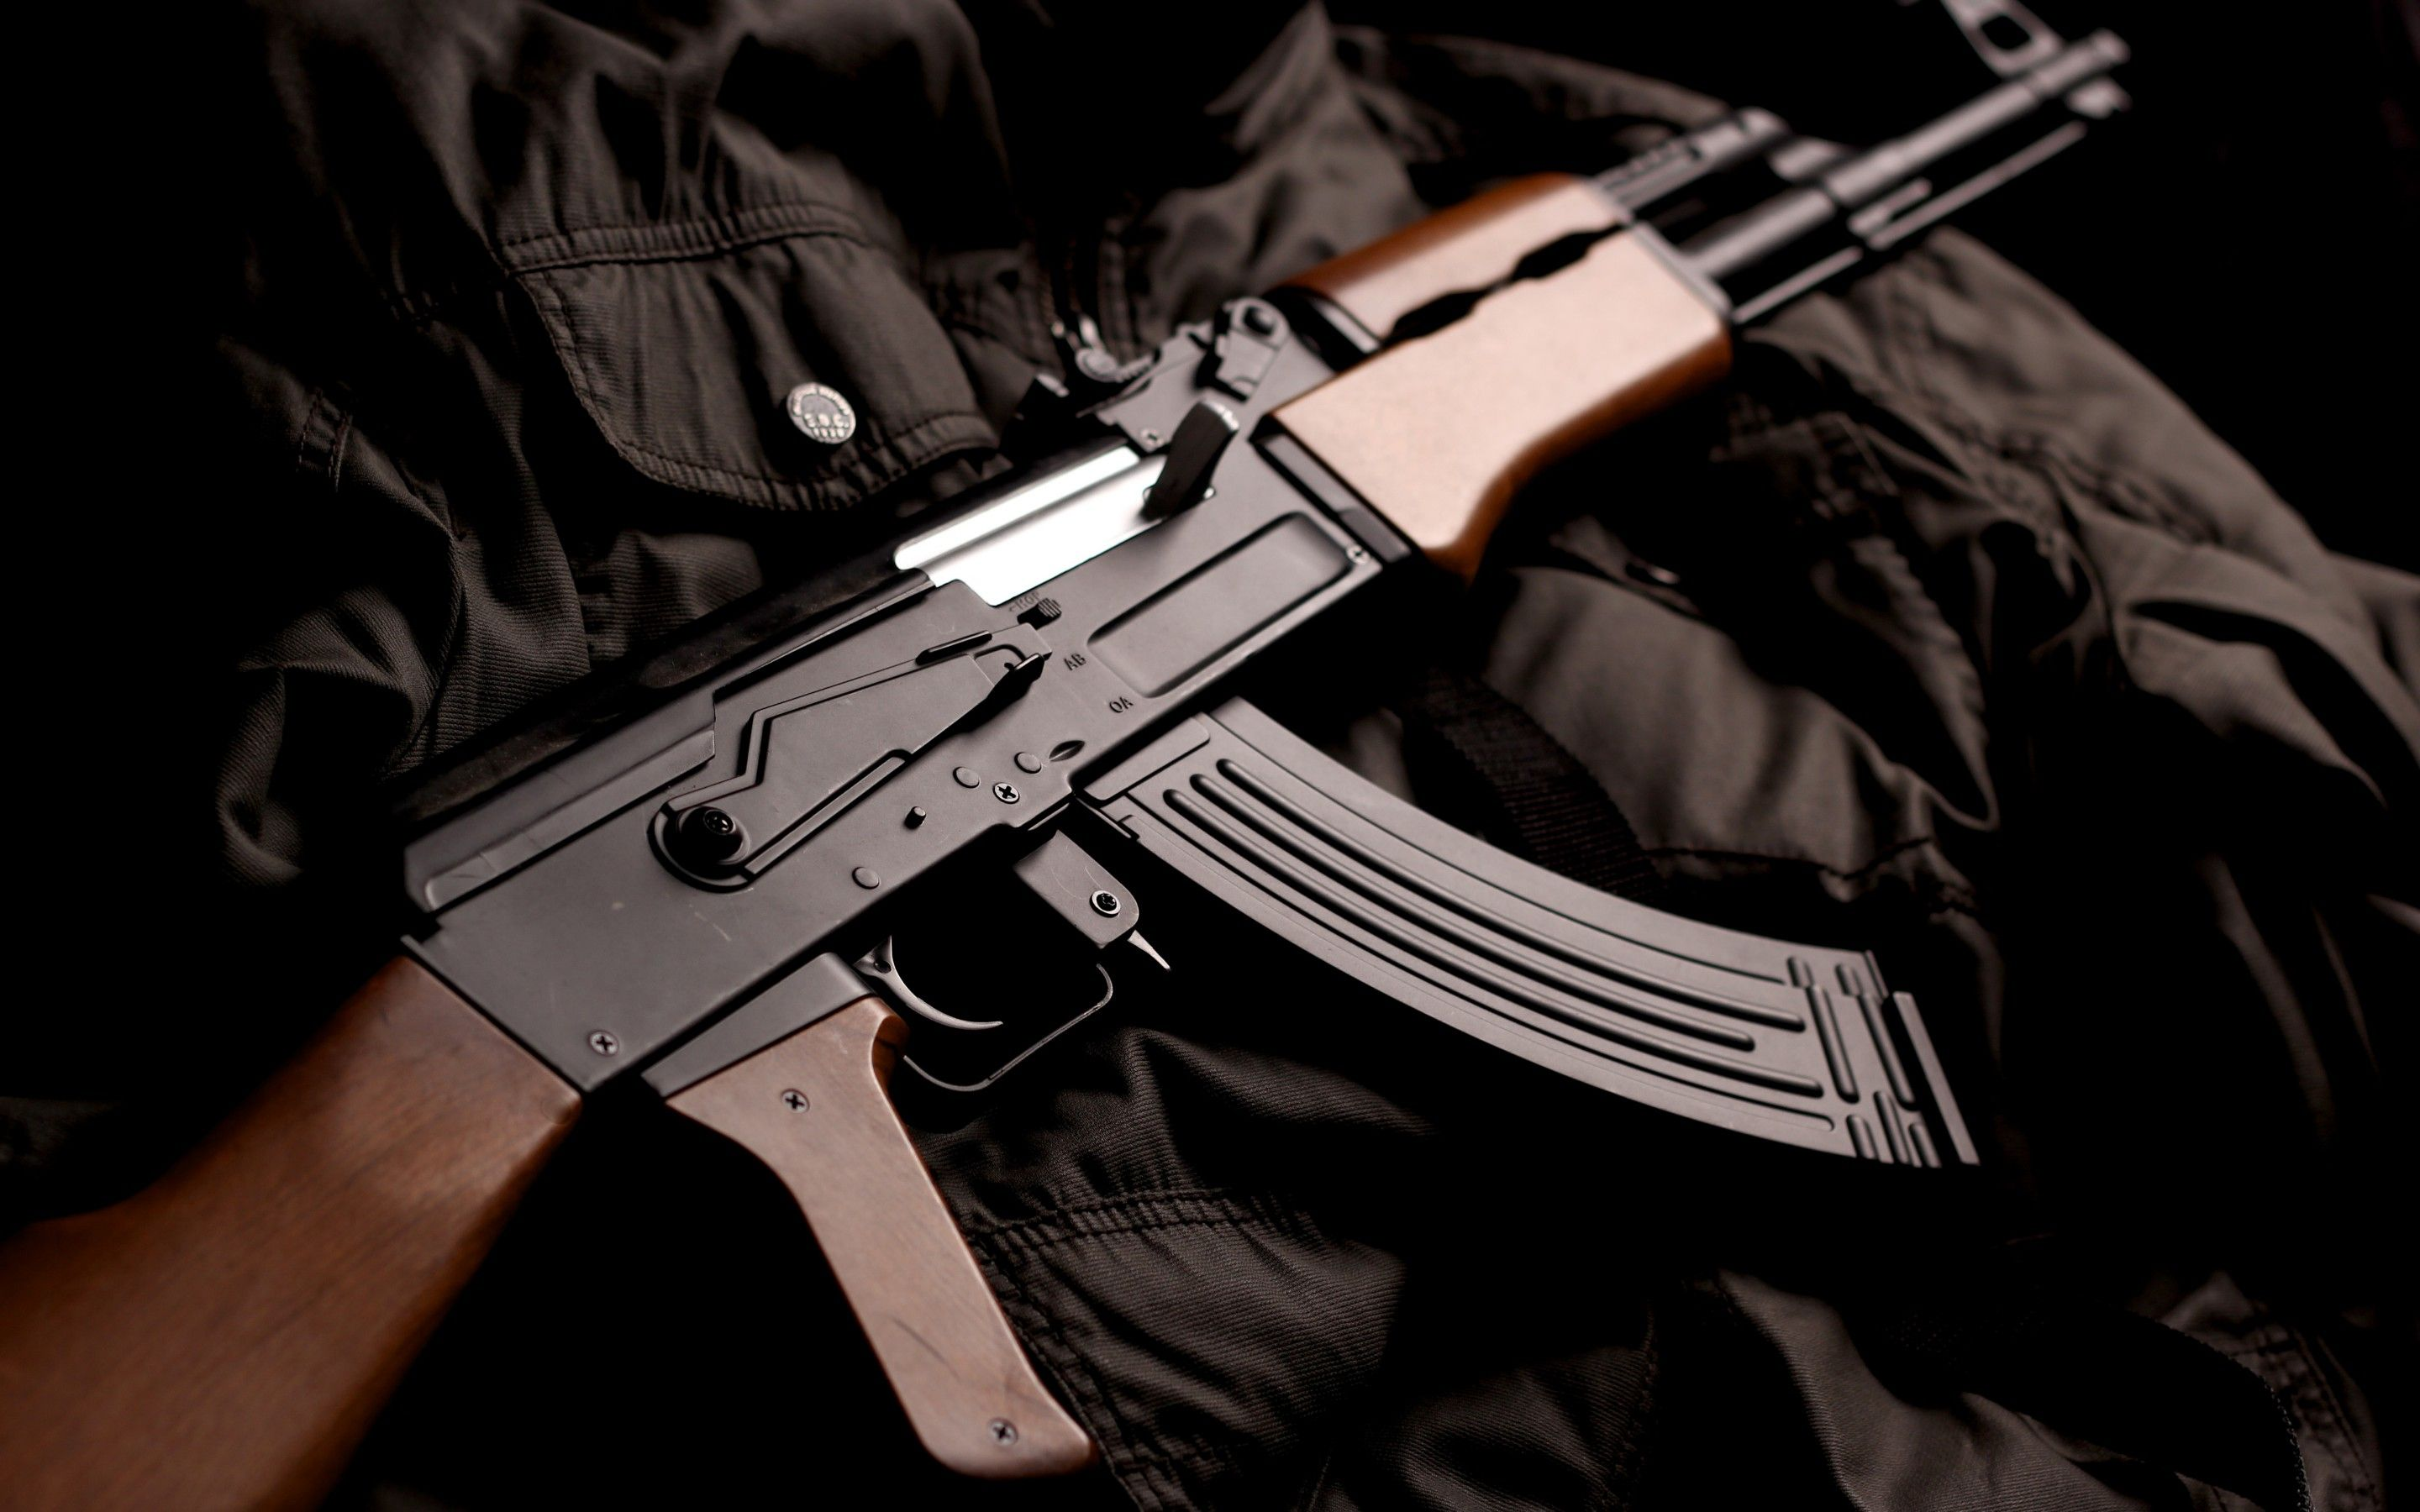 Gun Photography I Got From A Foreign Site Kalashnikov Rifle Wallpaper Backgrounds Wallpapers For